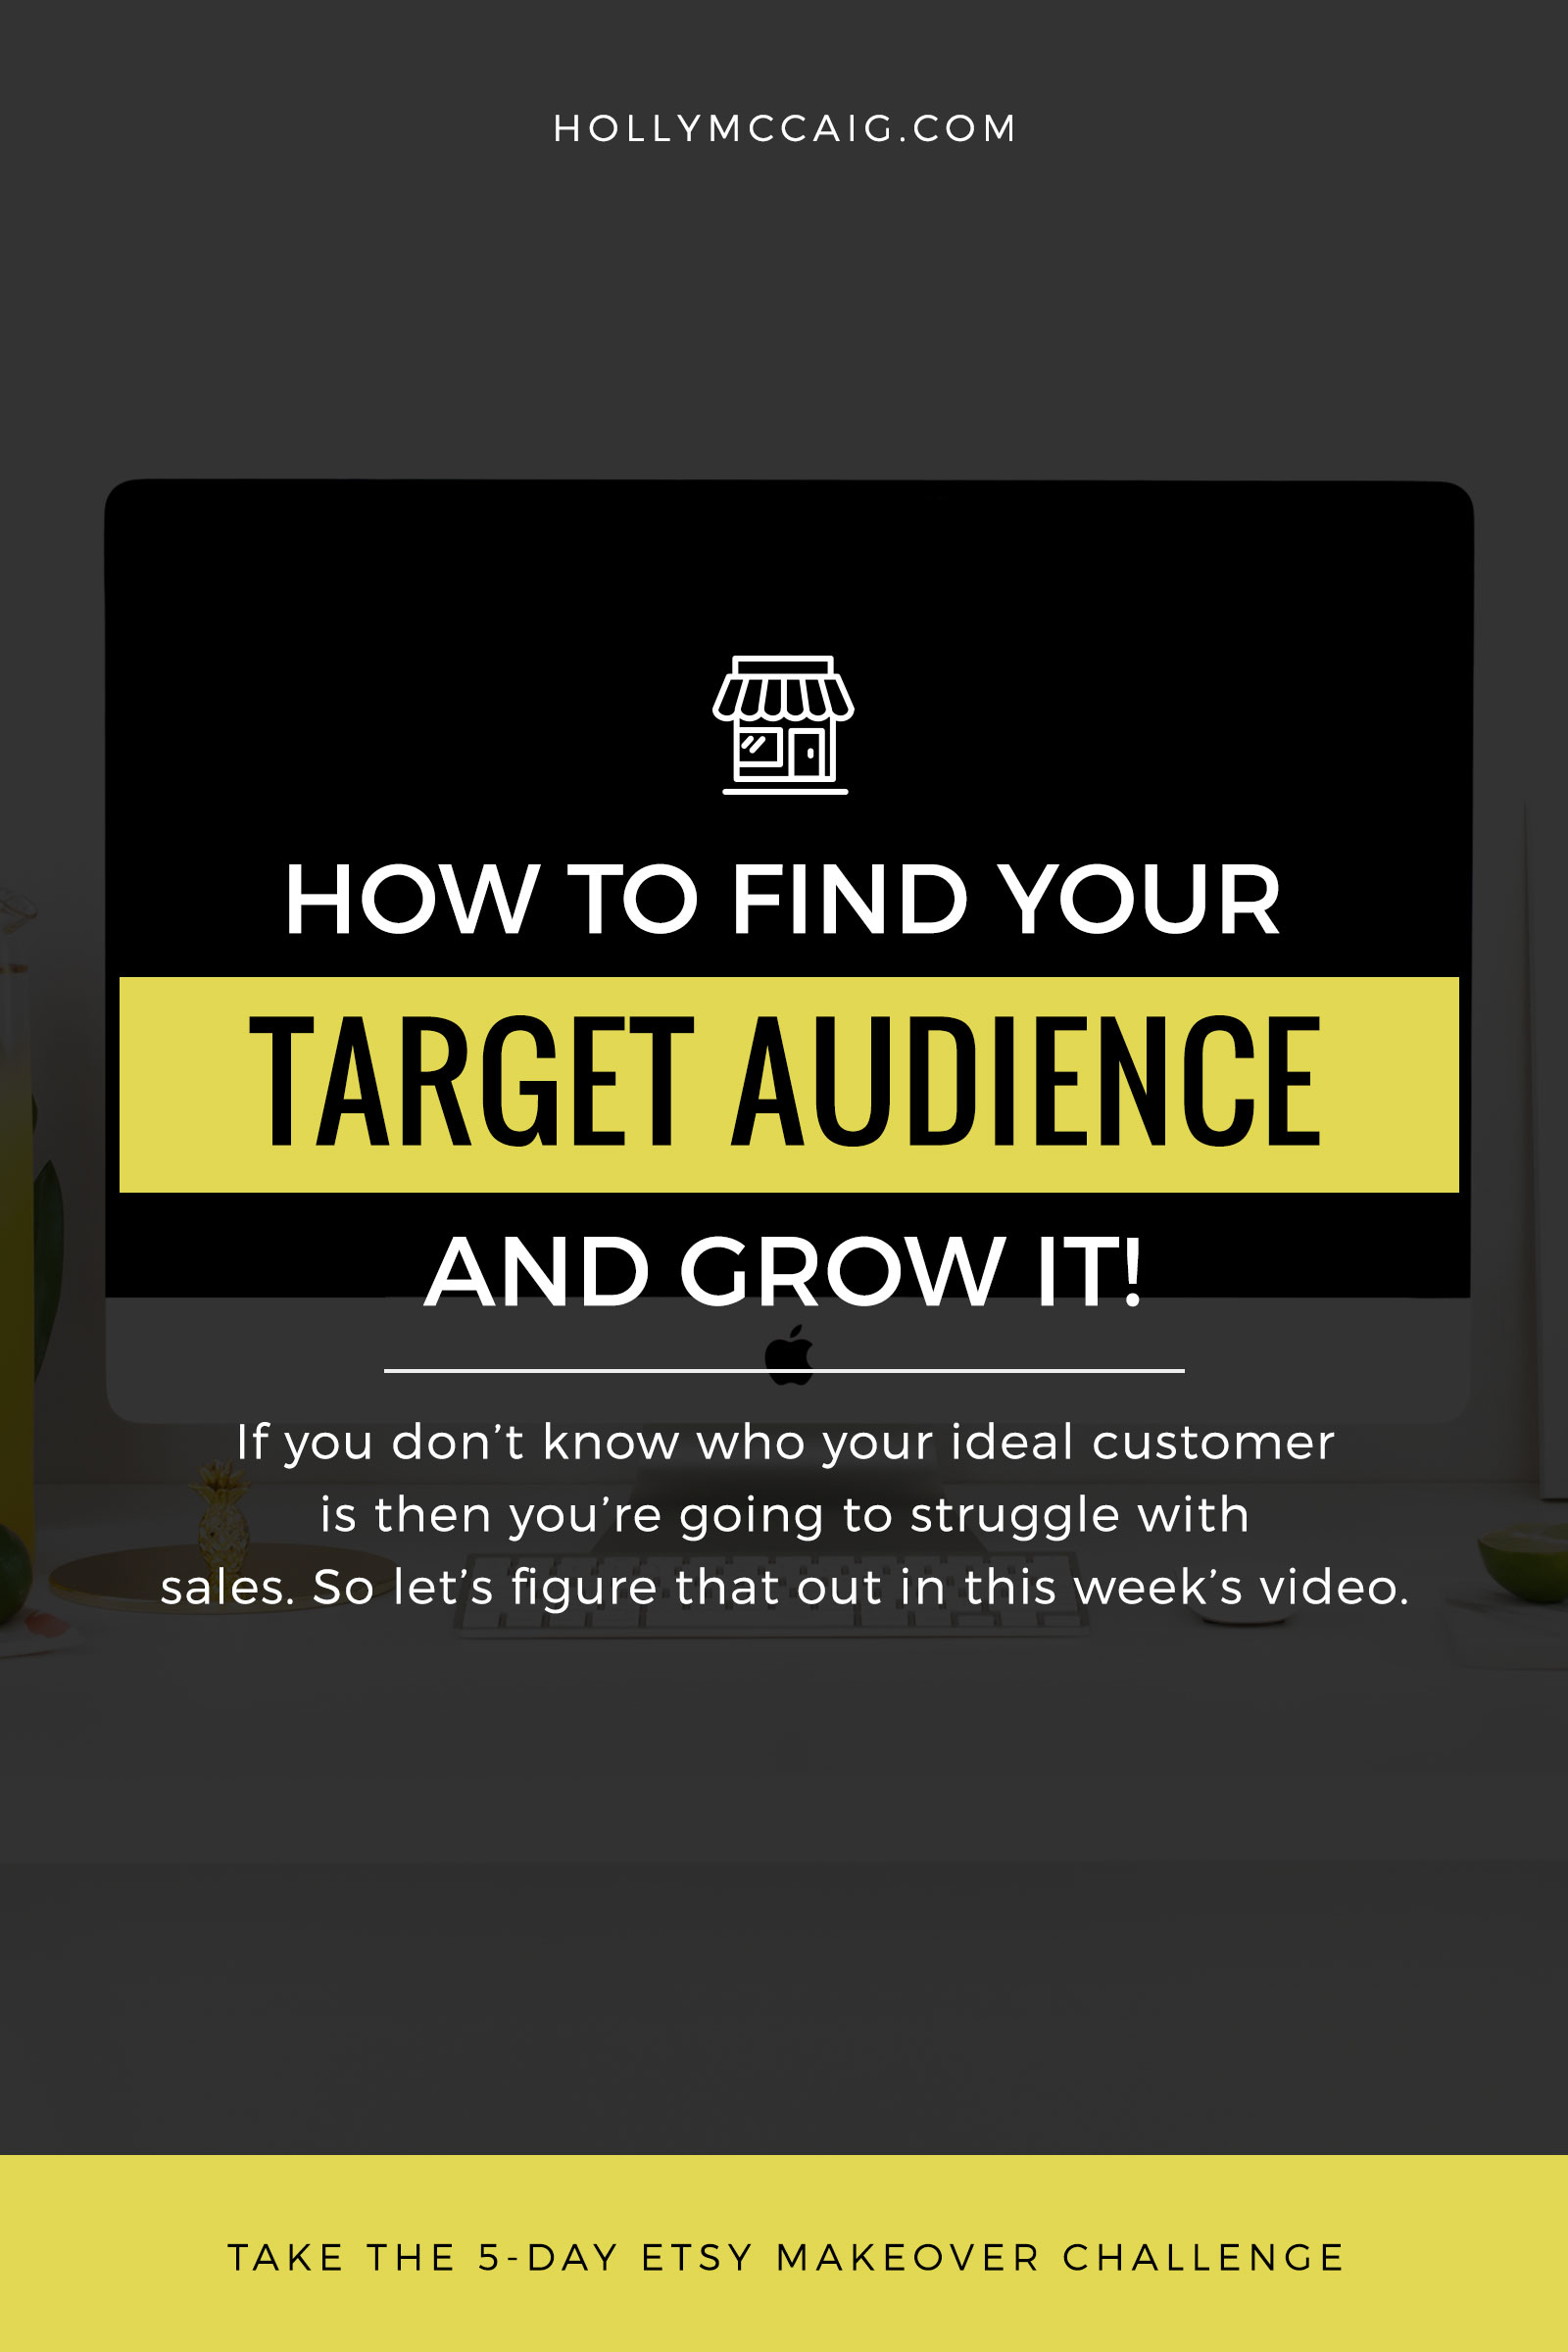 Stop struggling with your sales and business. Learn how to find your target audience and attract the right people to you!